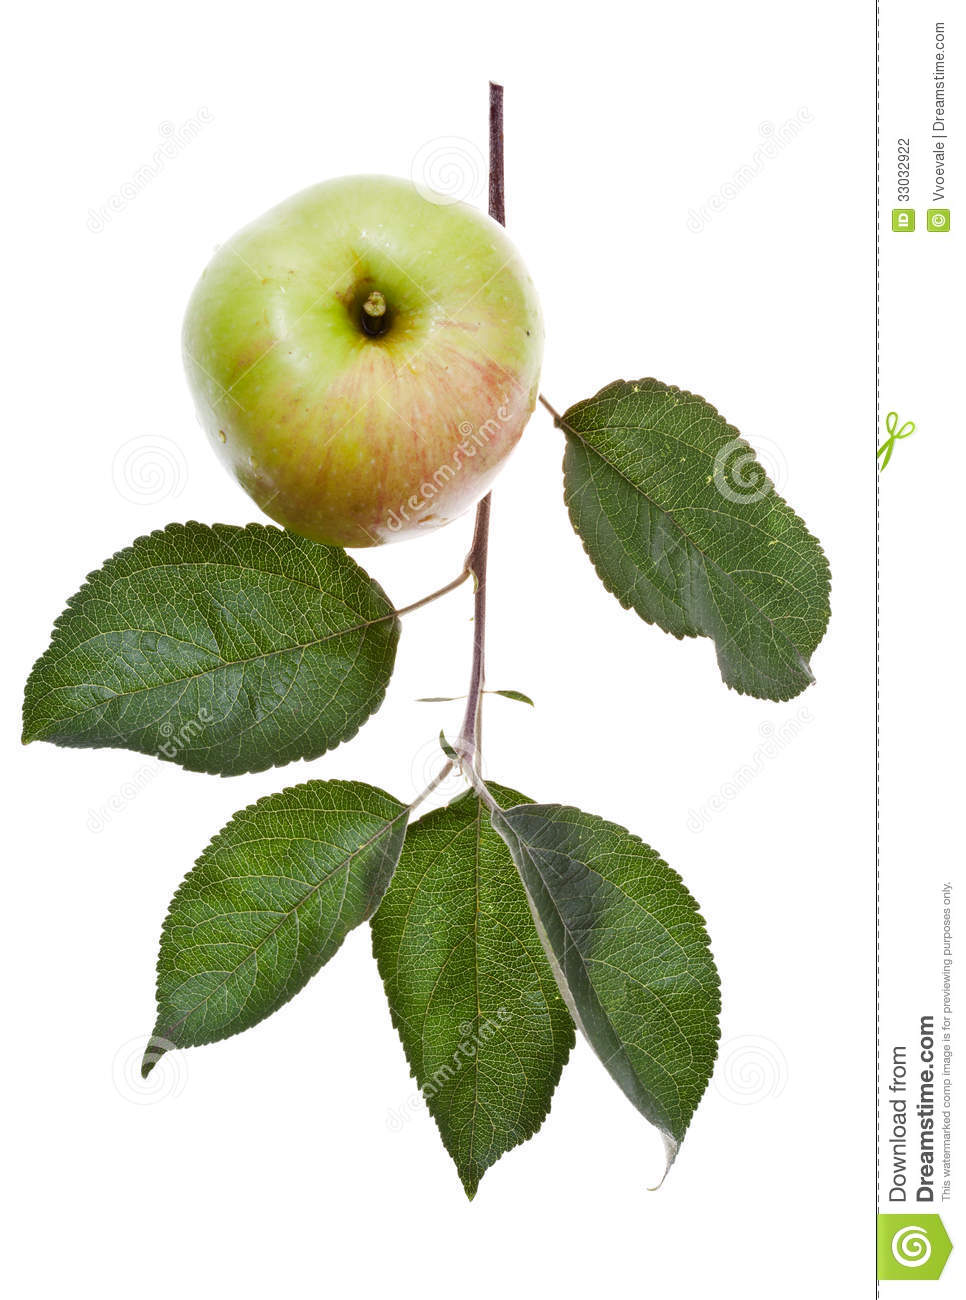 Apple Tree Branch With Green Leaves Stock Photo Image ofGreen Apple Tree Leaves